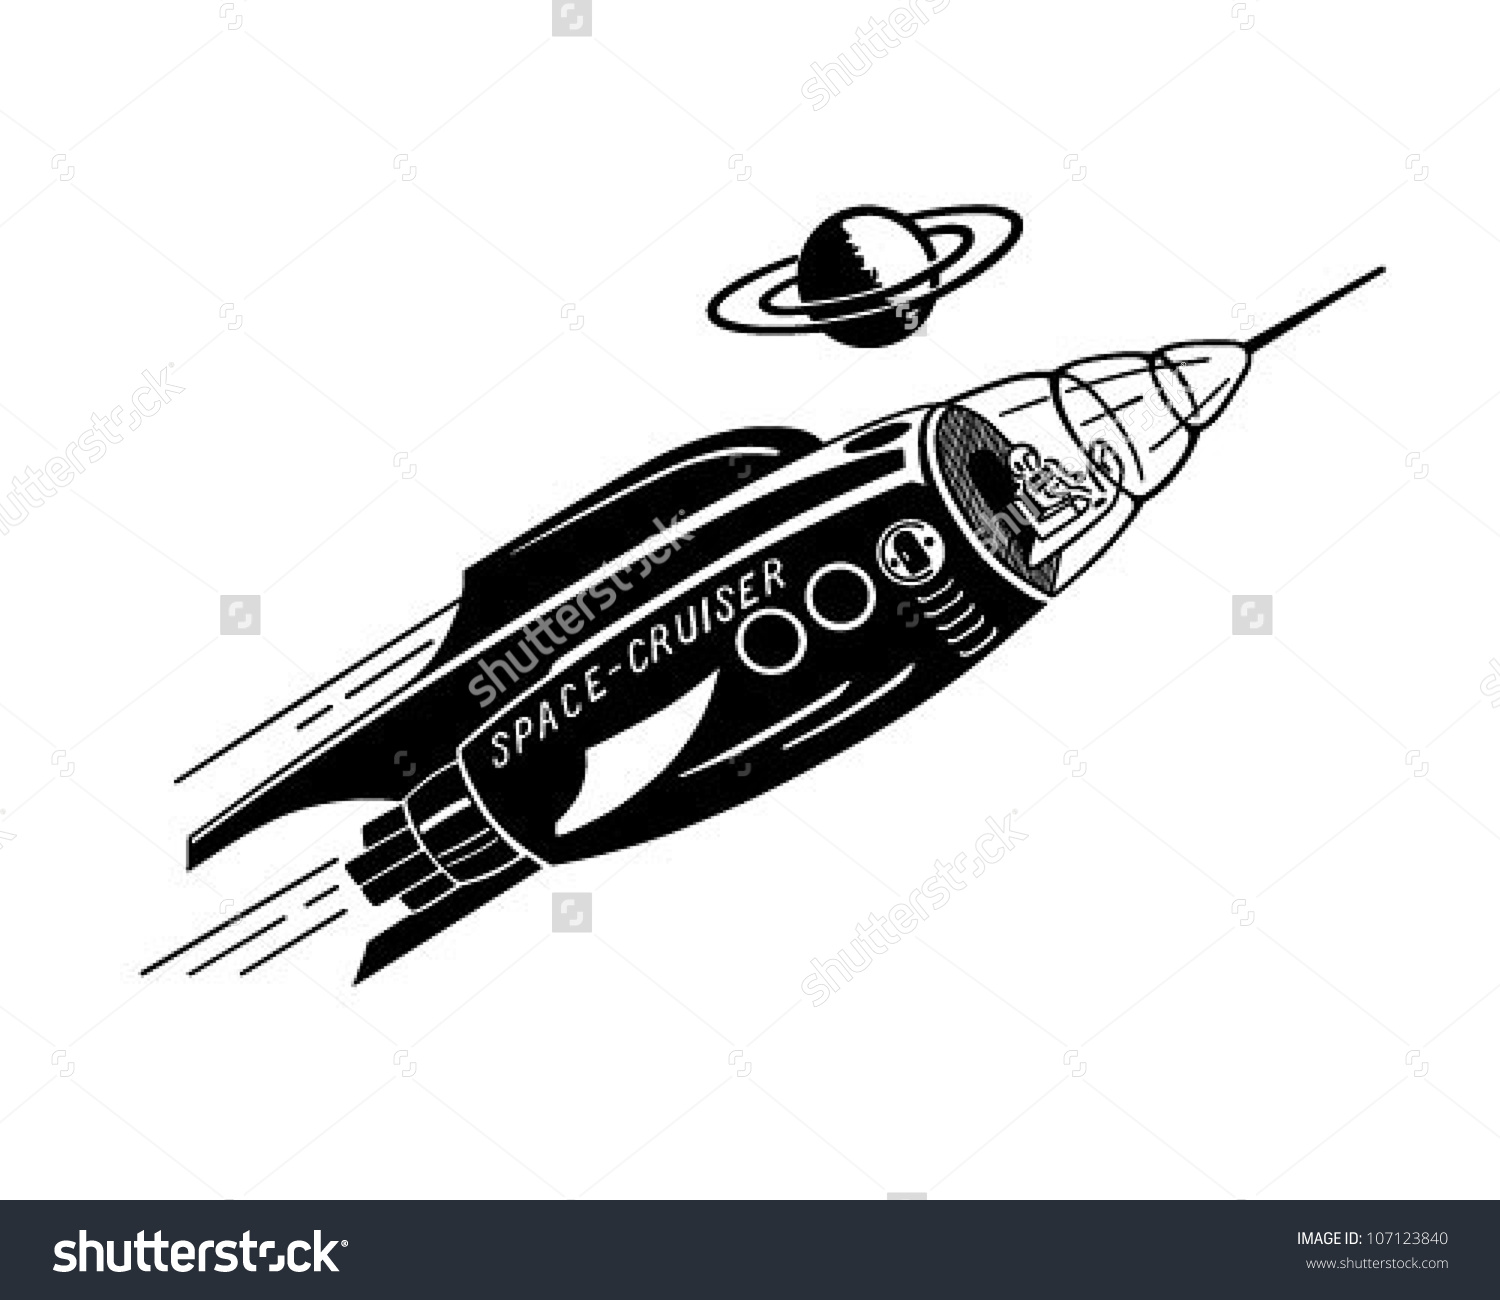 Space Cruiser Retro Clipart Illustration Stock Vector 107123840.